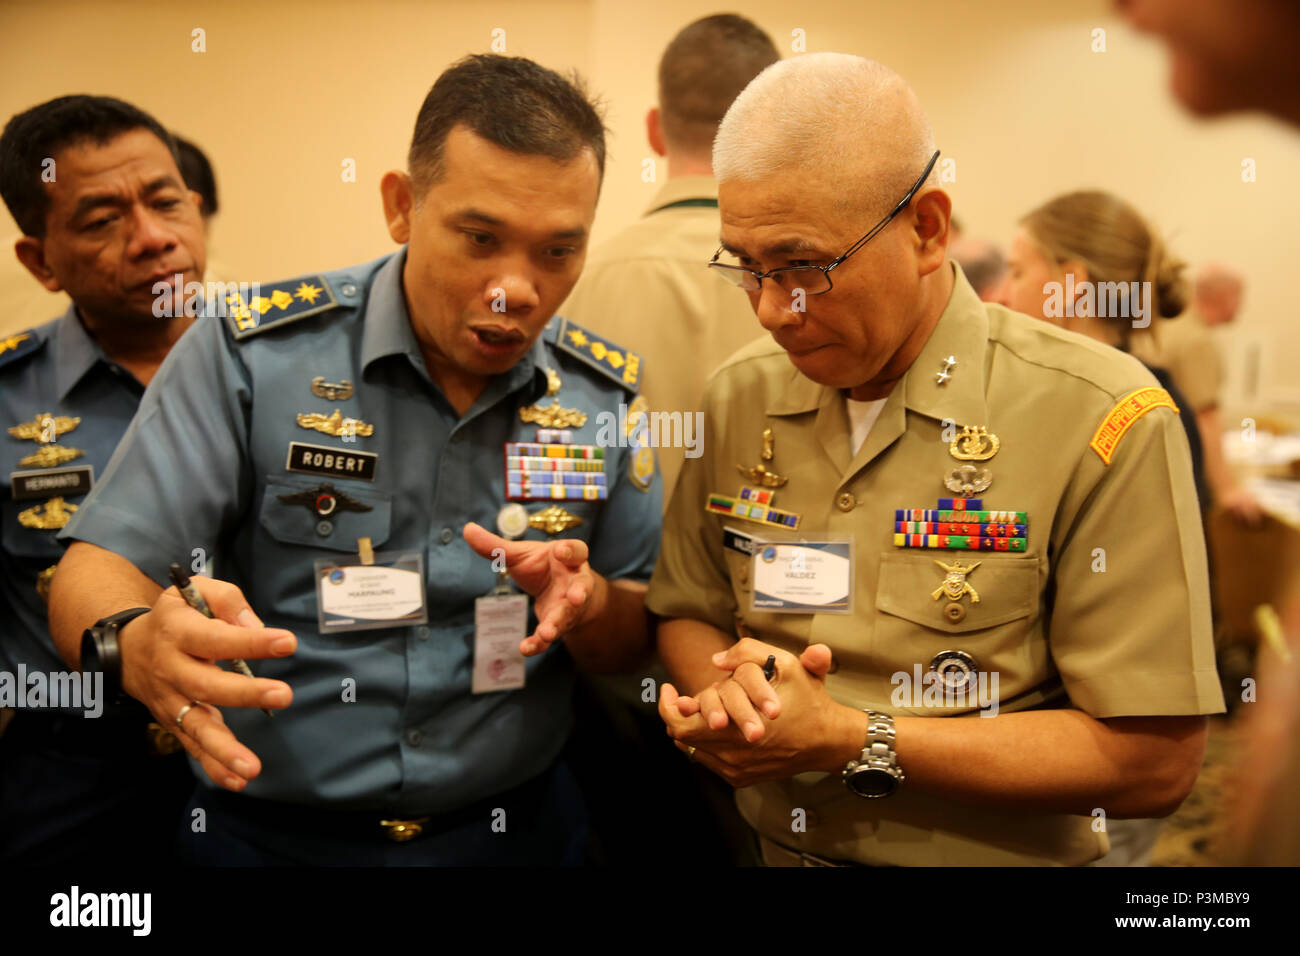 SAN DIEGO, Calif. - Indonesian Commander Robert Marpaung, Staf Perwira Kerjasama Internasional V/ Strategi Operasi, Staf Operasi, Mabes TNI AL, and Major General Remigo Castro Valdez, commandant of the Philippine Marine Corps, interact with one another during a Table-Top Exercise, as part of Pacific Command Amphibious Leaders Symposium 2016 (PALS-16) in San Diego, Calif., July 12, 2016. PALS-16 brings together senior leaders of allied and partner nations throughout the Indo-Asia Pacific region. The symposium consists of academic and group discussions, a Table-Top Exercise and an amphibious lan Stock Photo